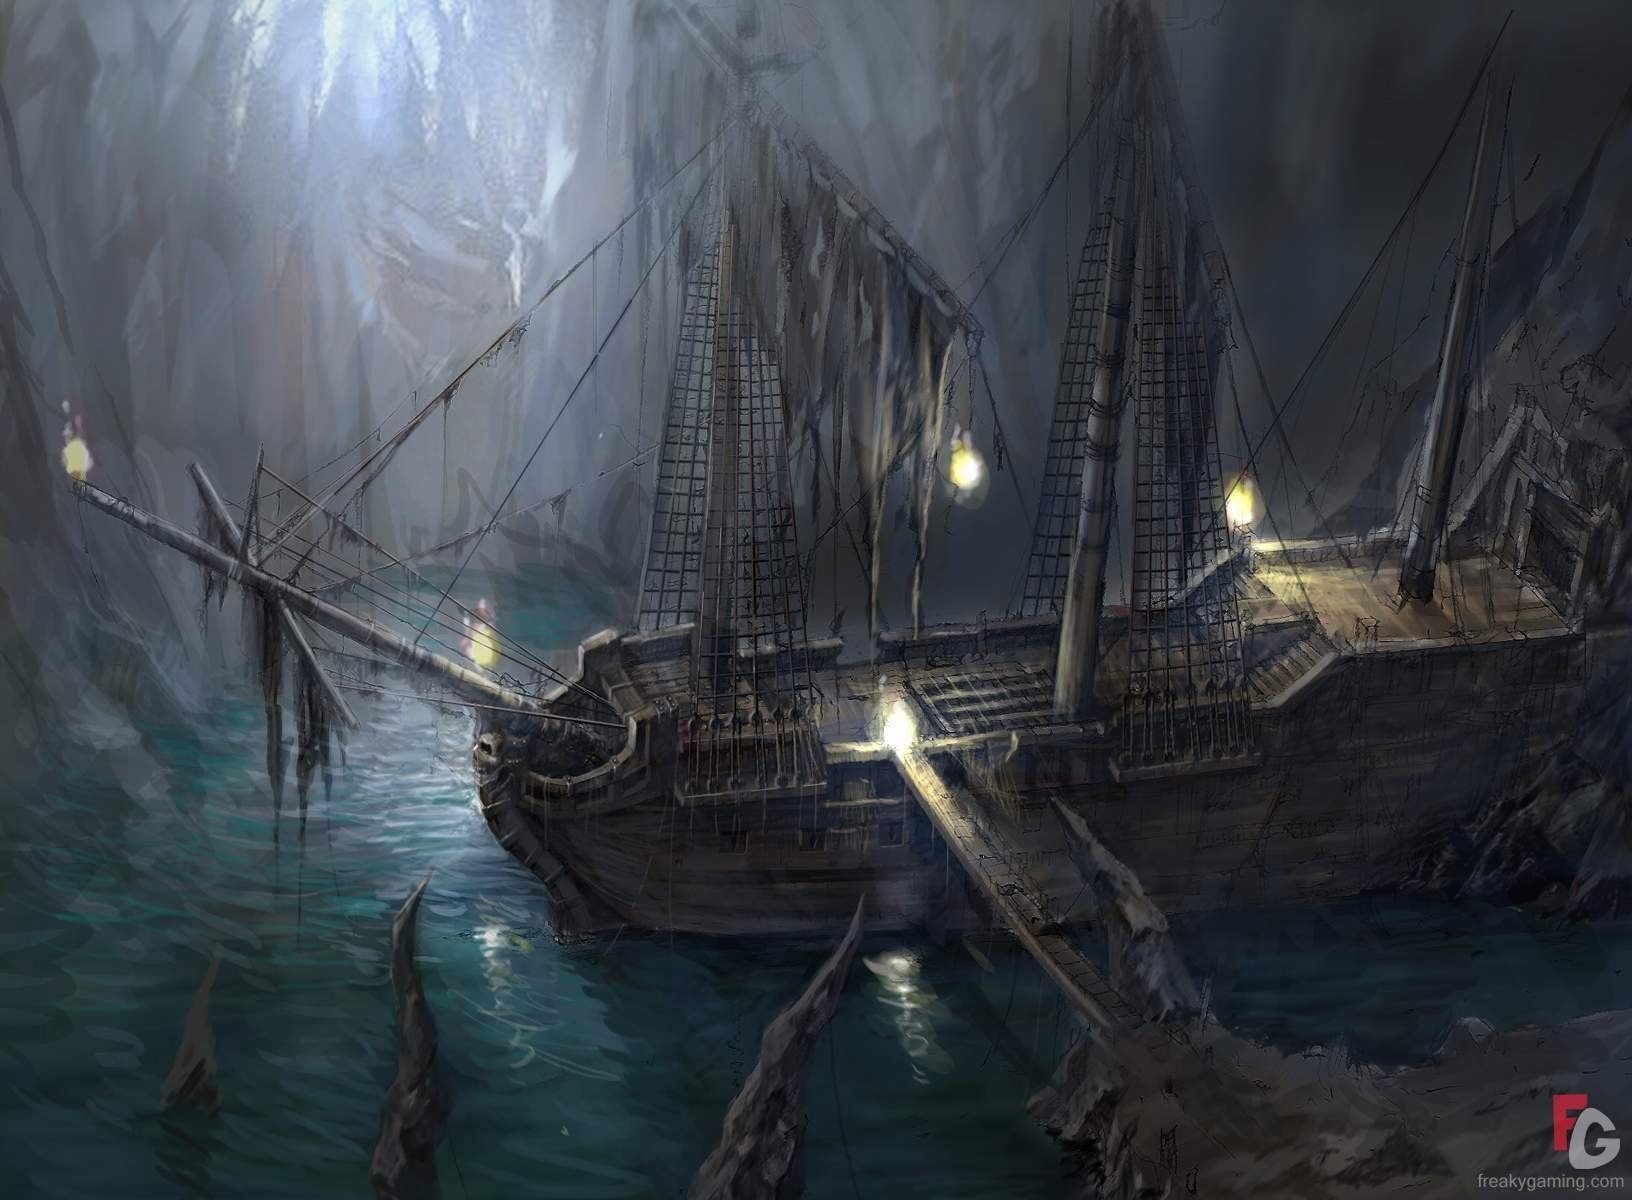 Ghost Pirate Ship Photos | Man I love me some pirate lore…the stuff of fantasy!